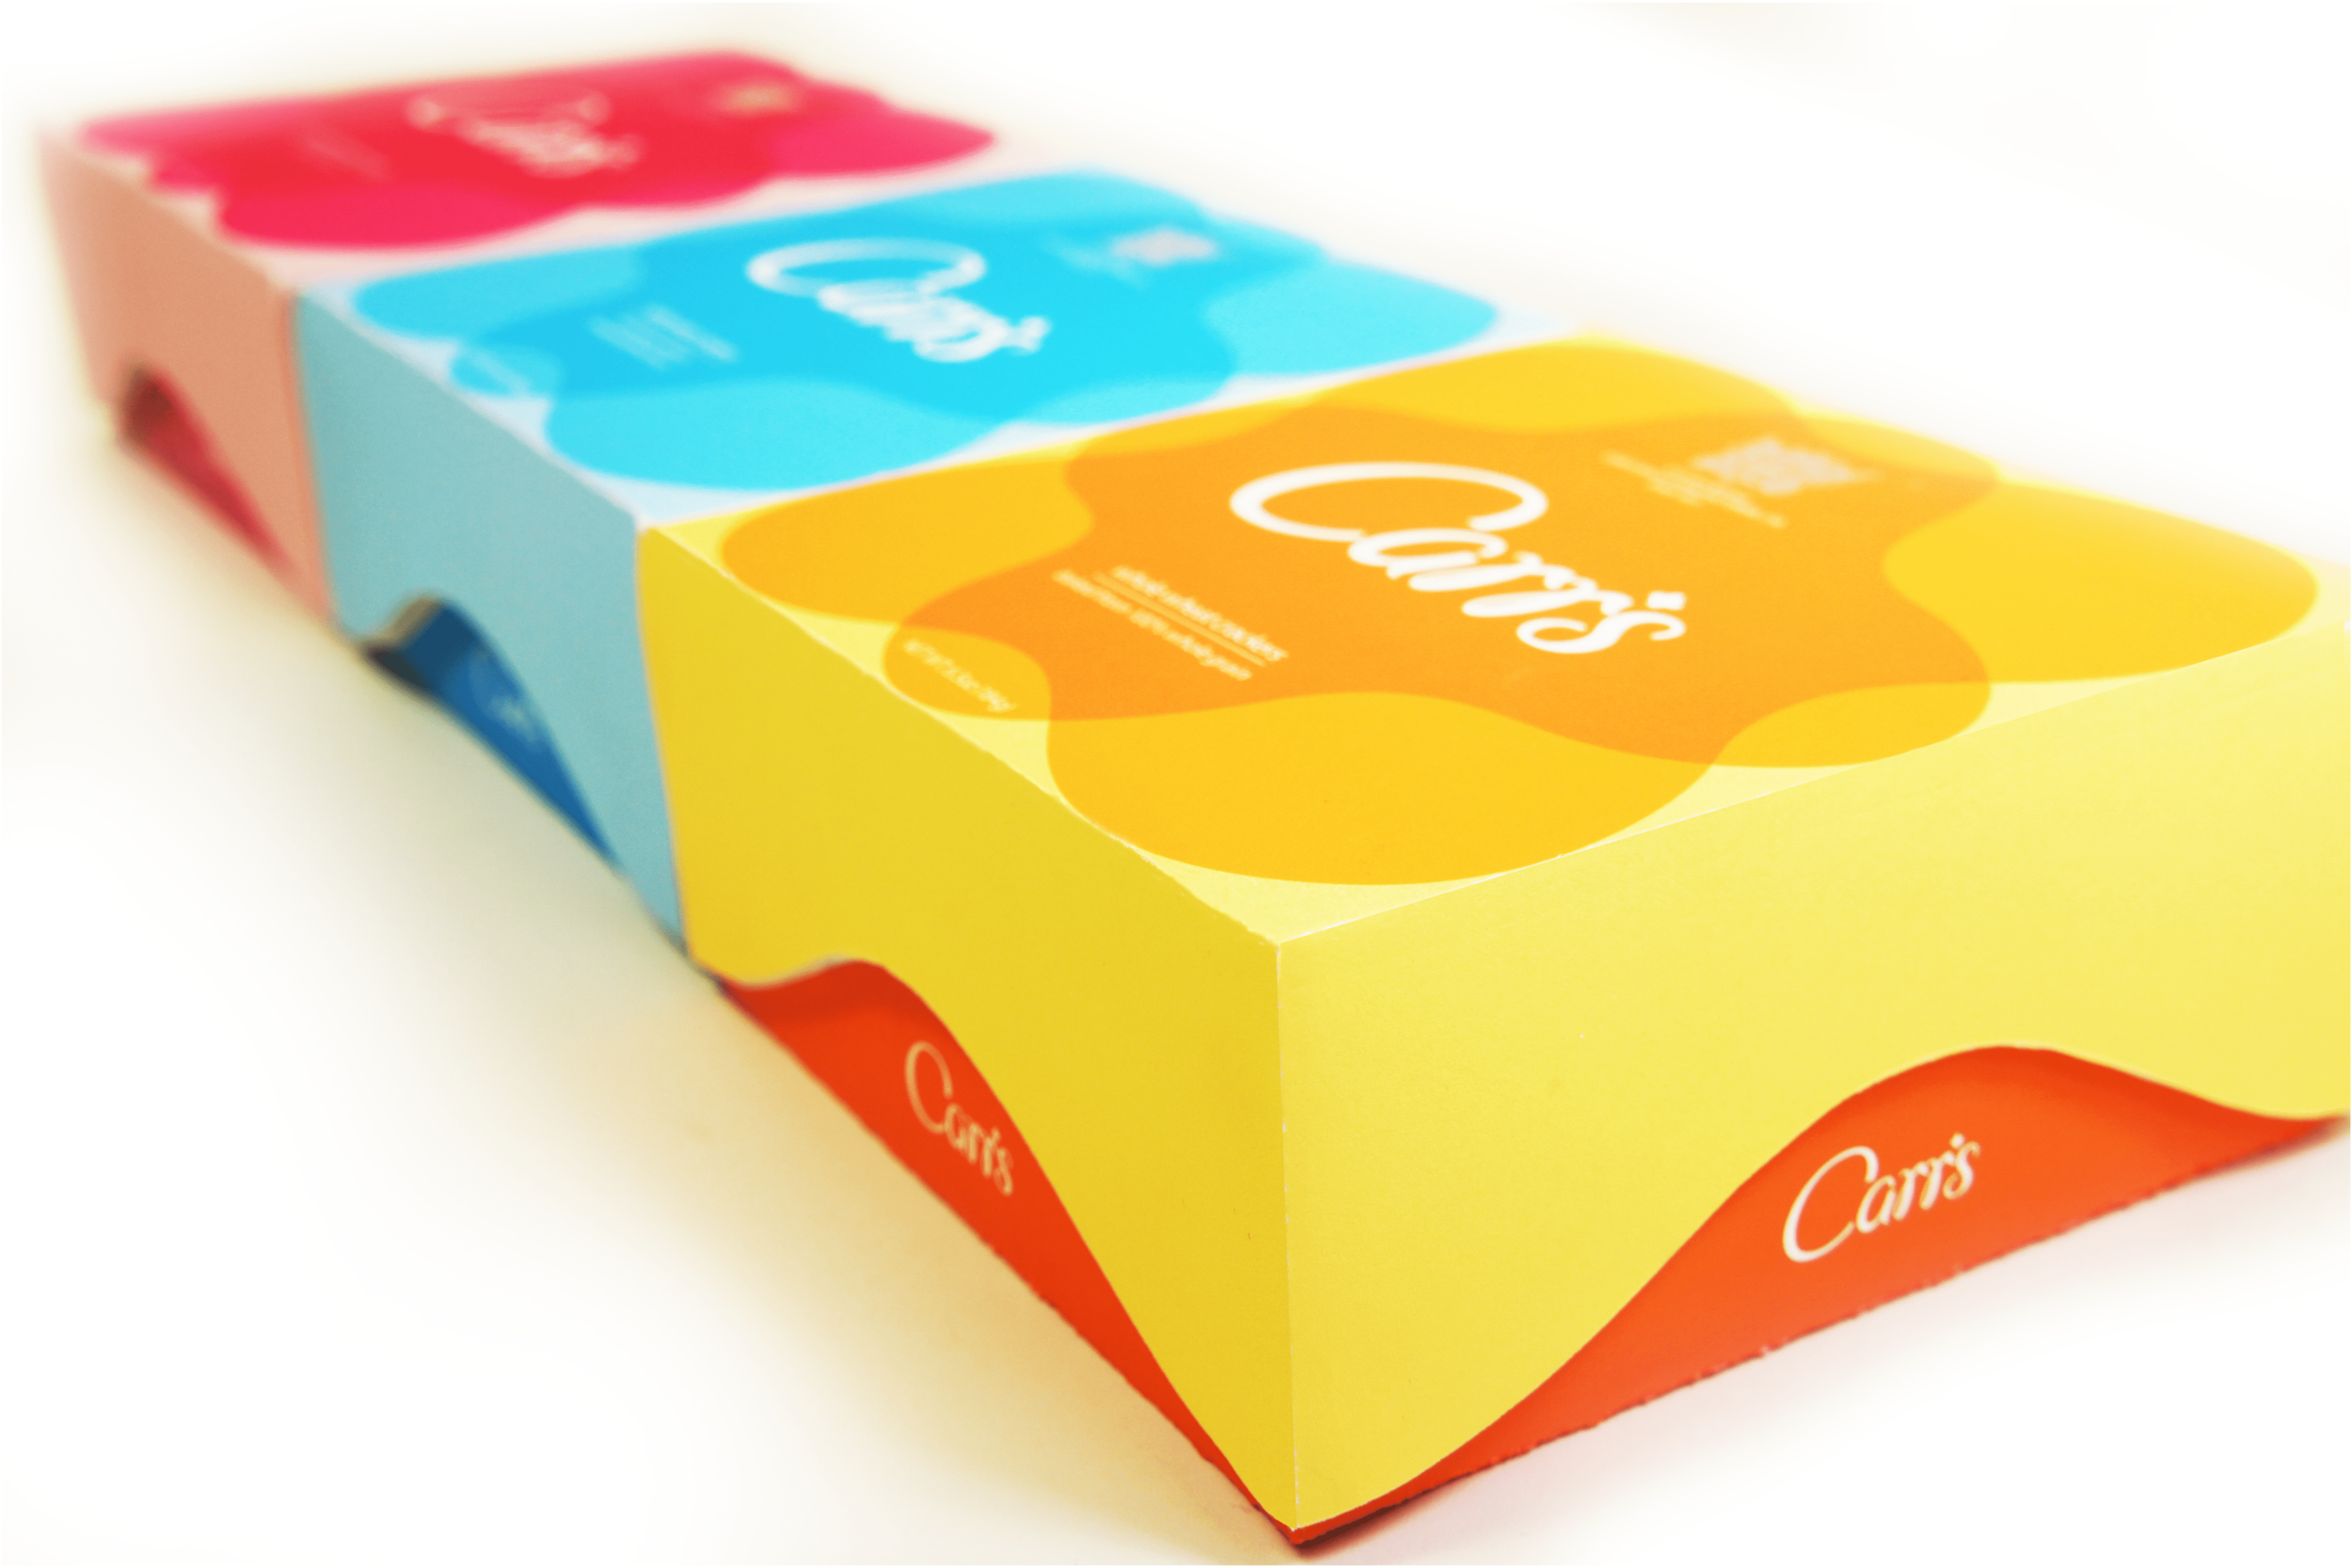 Redesign-Carr's-Biscuits-Redesign.png